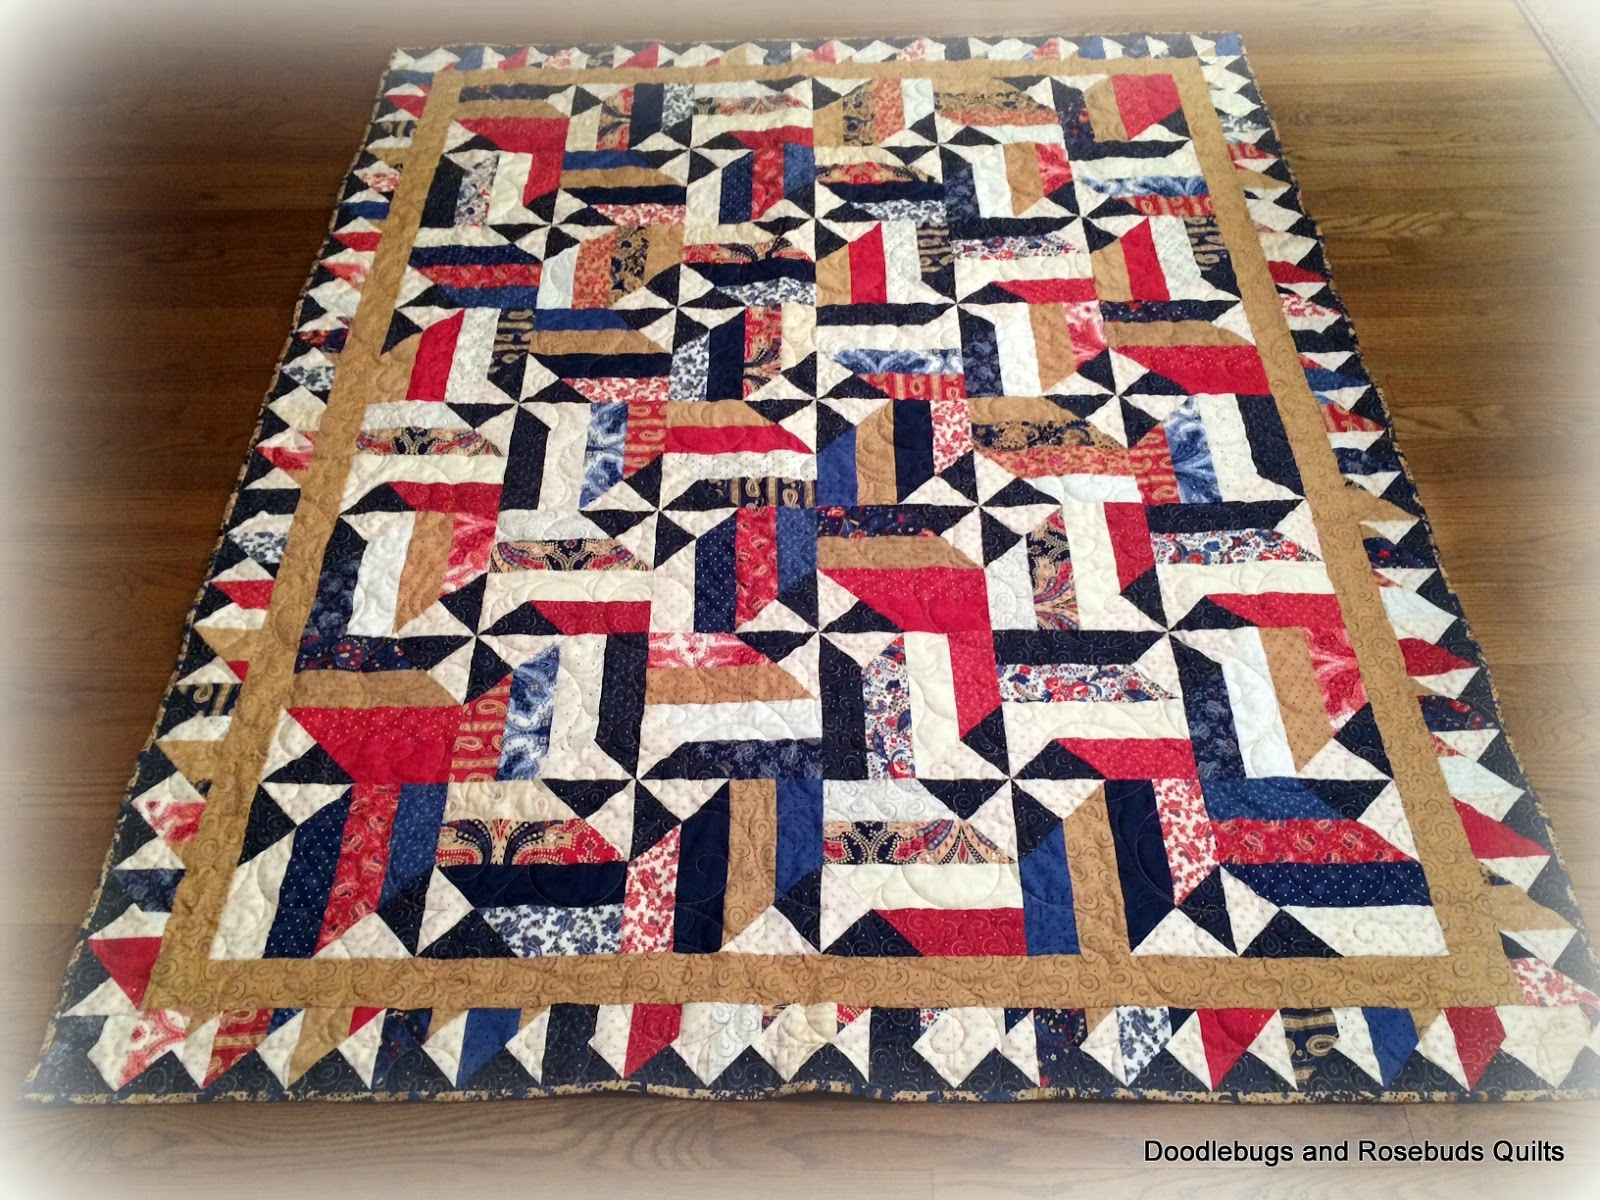 Doodlebugs and Rosebuds Quilts: Red, White and Blue Finish : red and blue quilt - Adamdwight.com